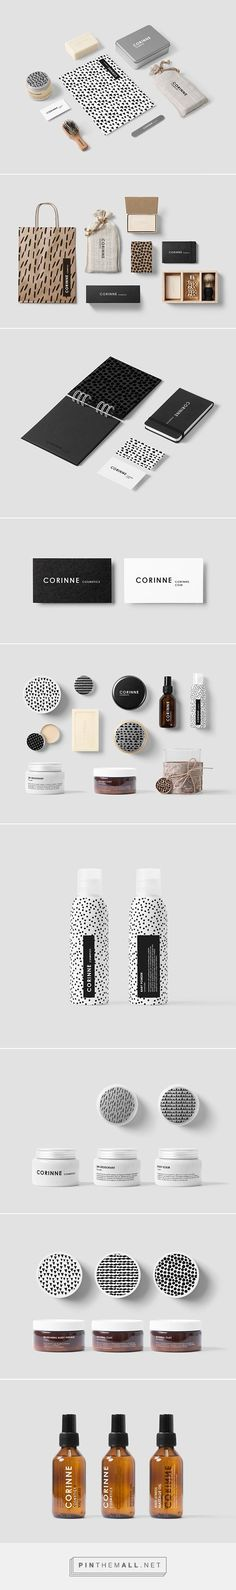 Beautiful branding goes back to nature | Branding | Creative Bloq #Design